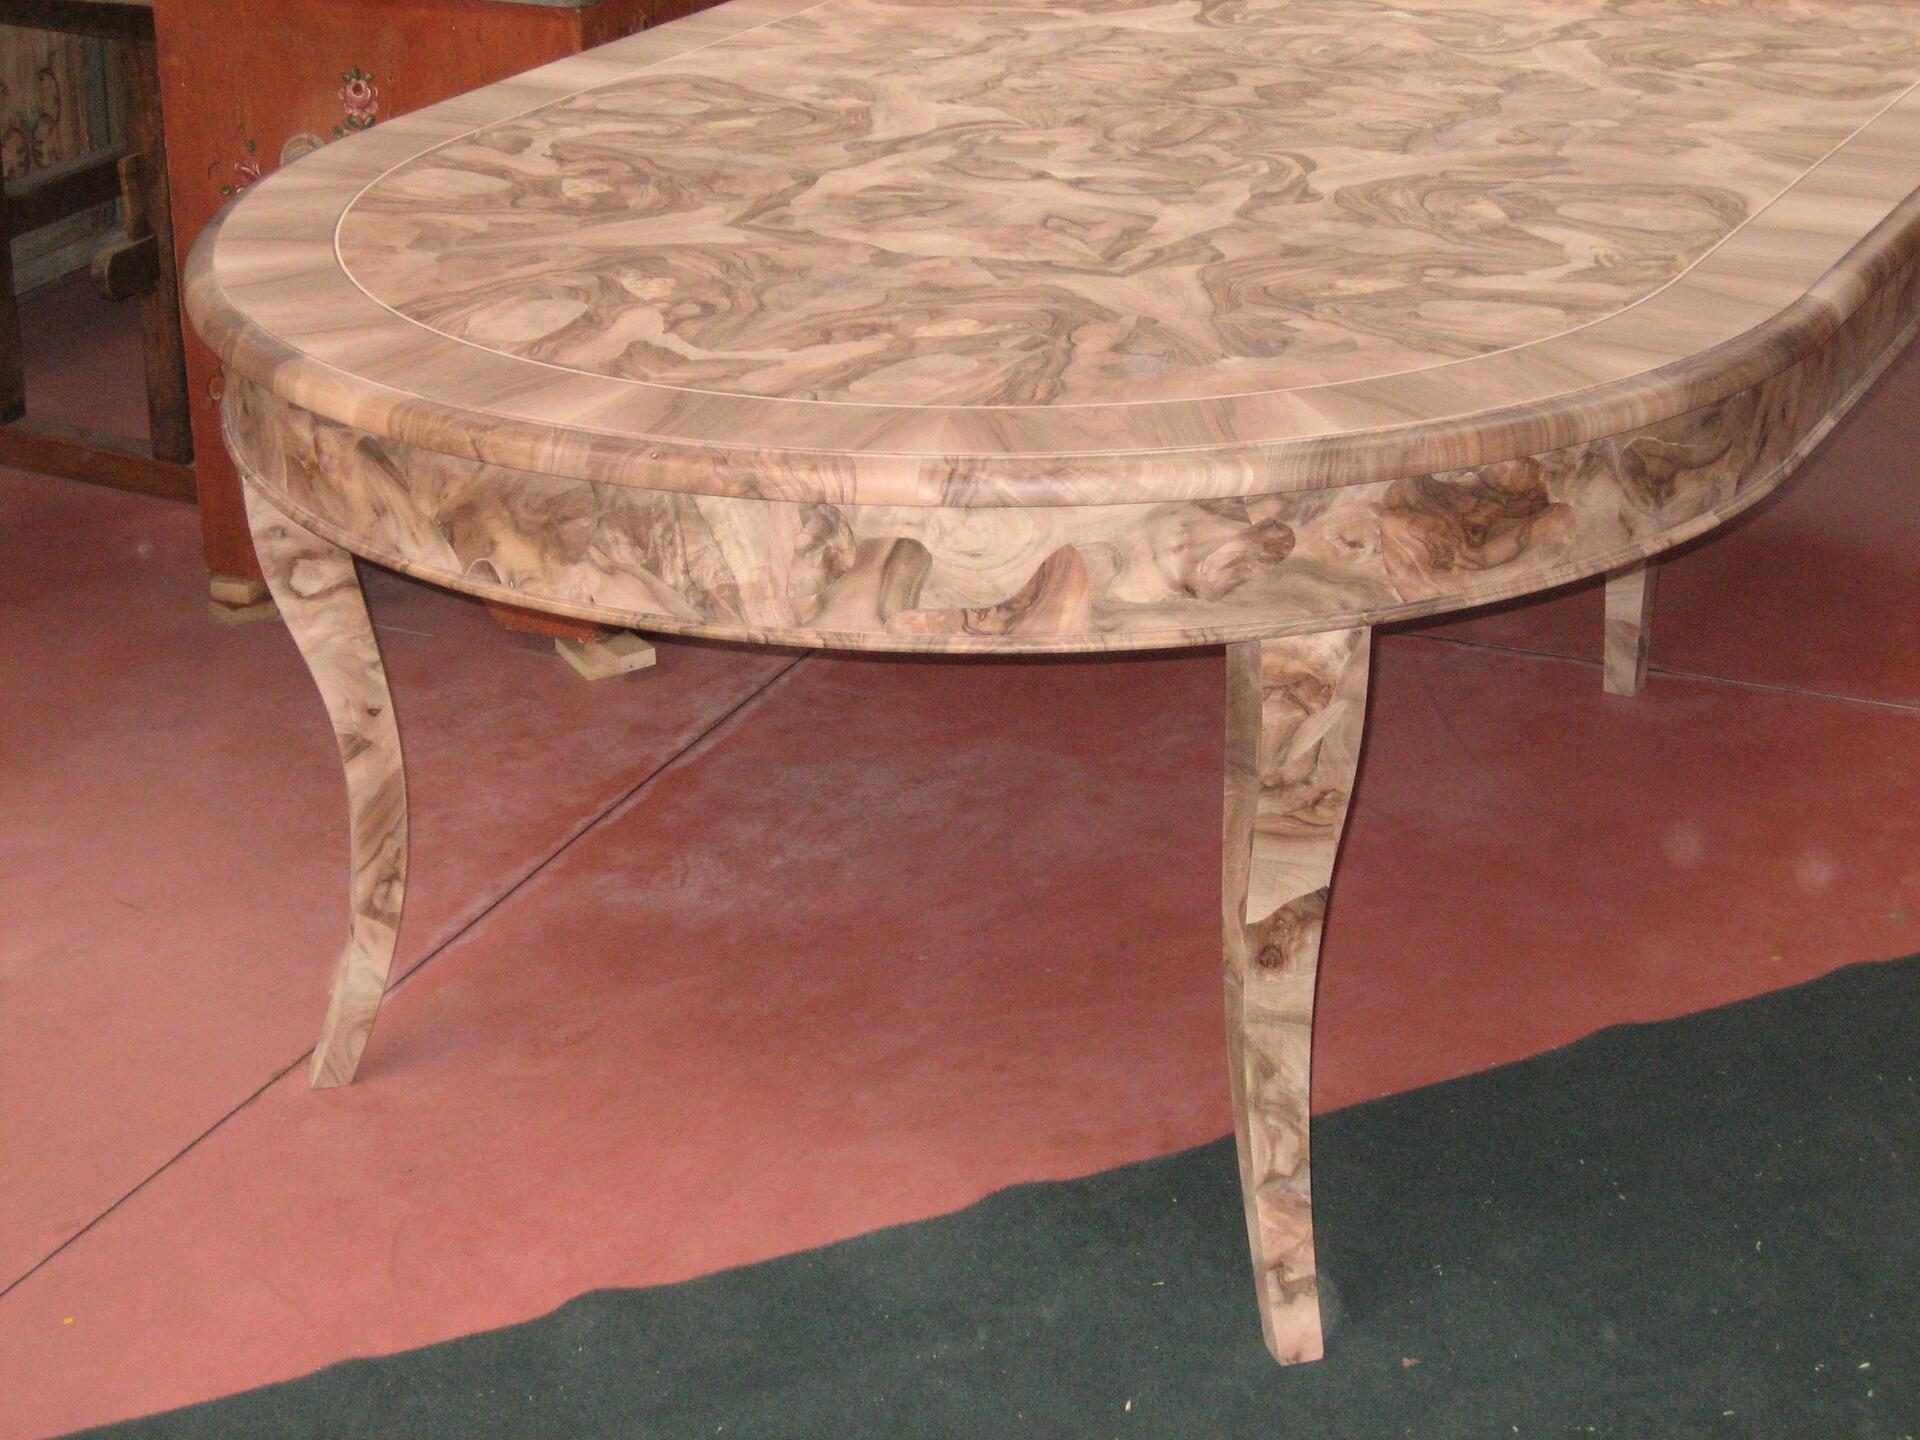 Tavolo Rotondo Allungabile In Noce.Luxury Round Baroque Venetian Table In Walnut Root